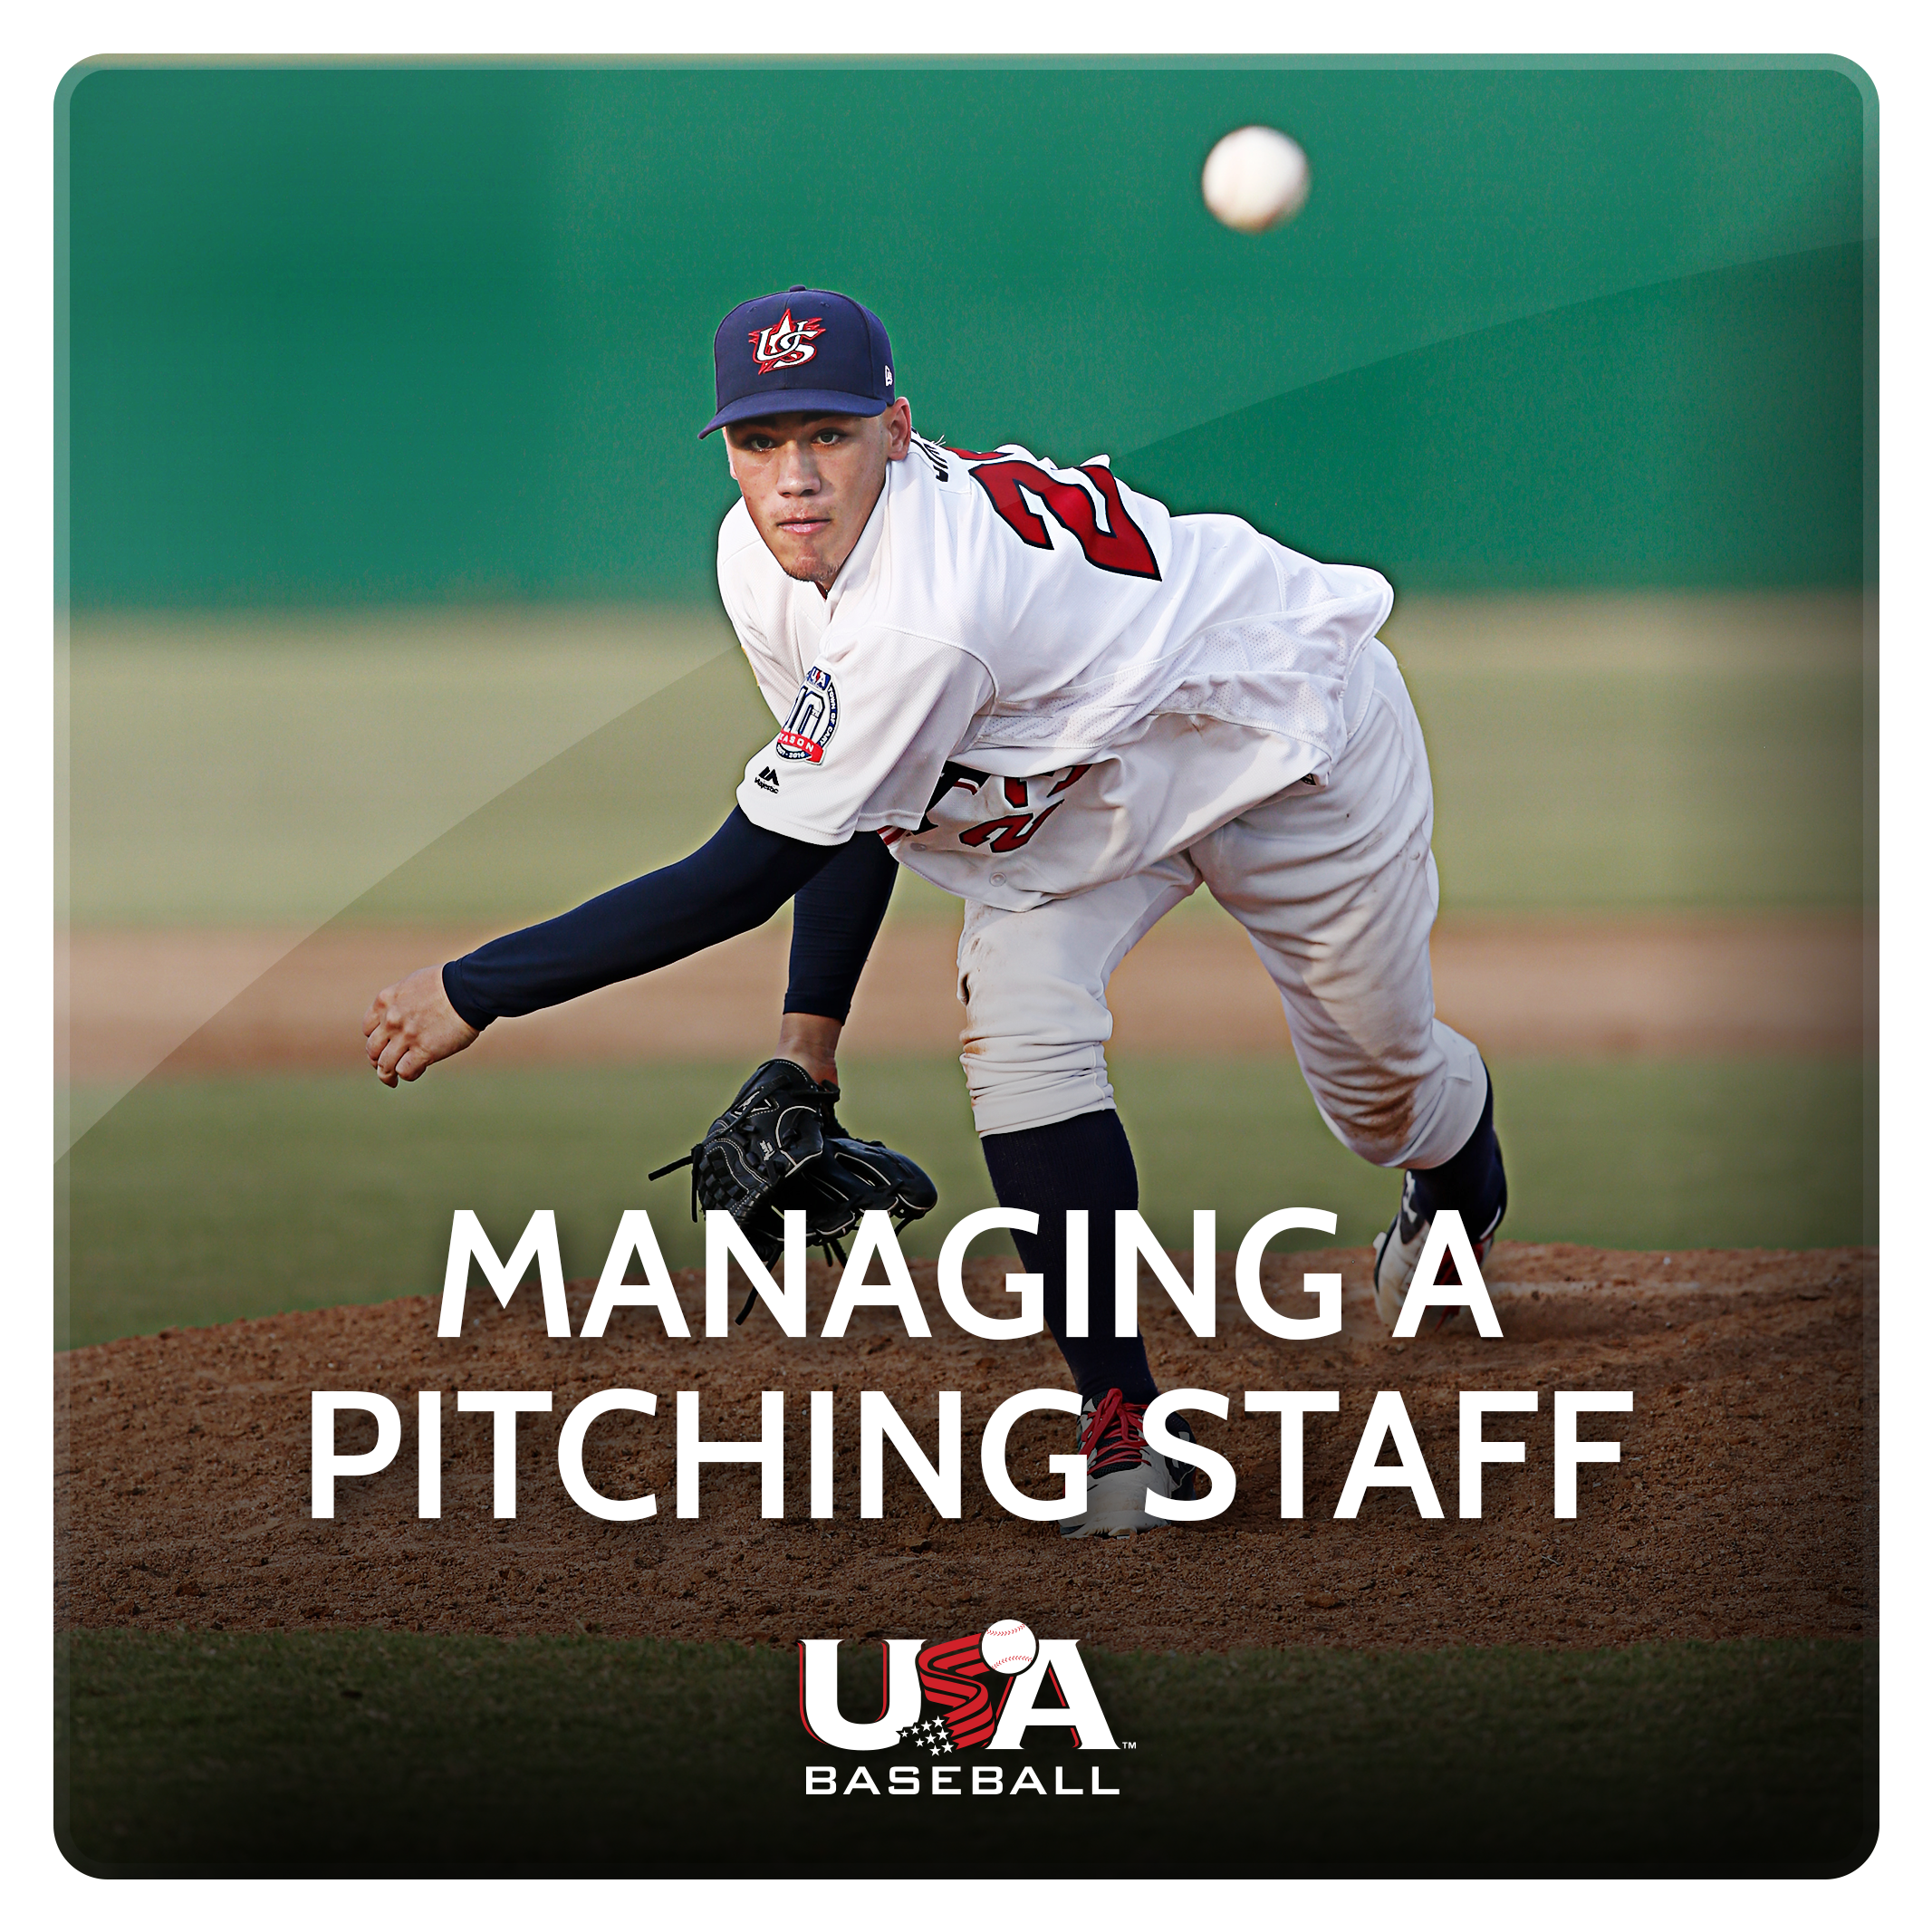 Managing a Pitching Staff